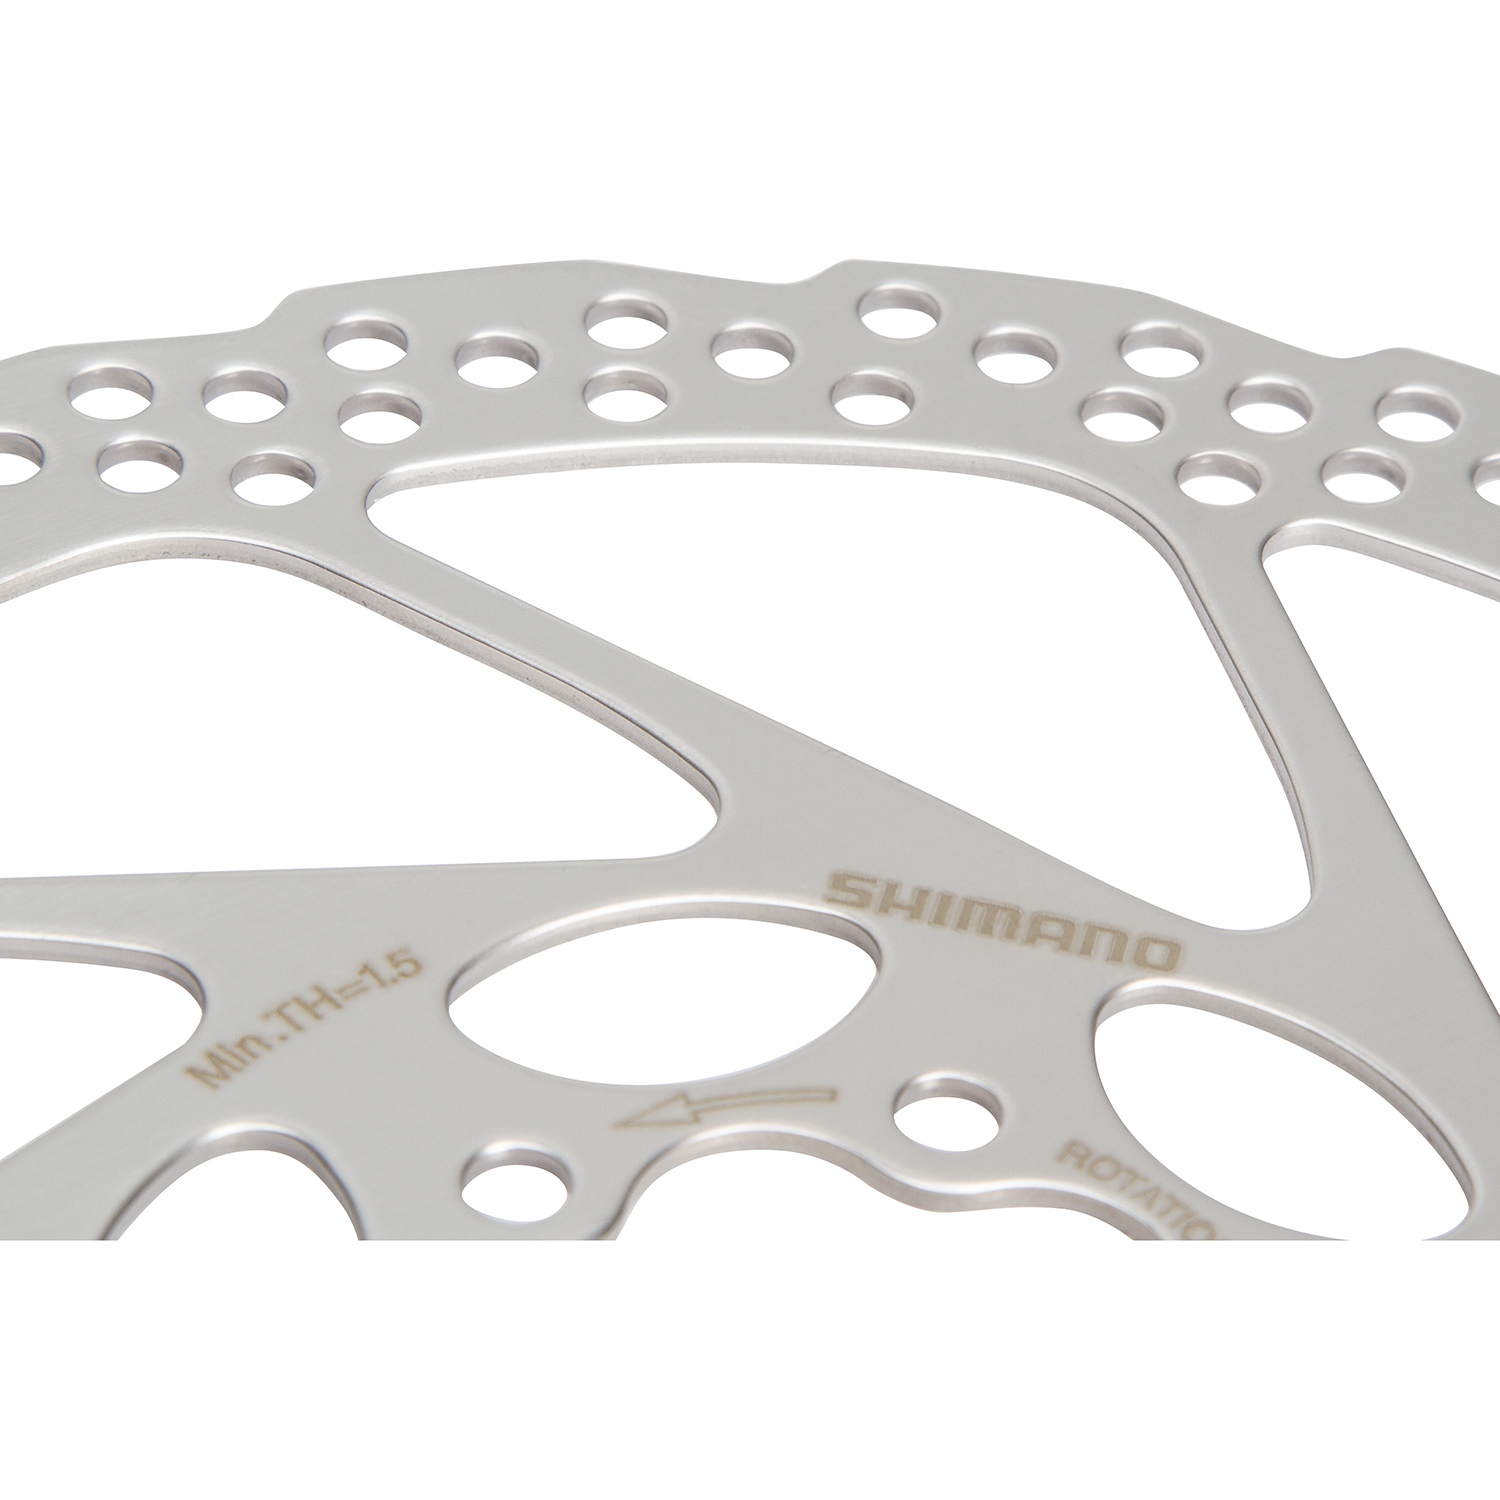 485 Standard M by Shimano Brake Shimano Sm-Rt 56 S 160 MM 6-Hole for BR